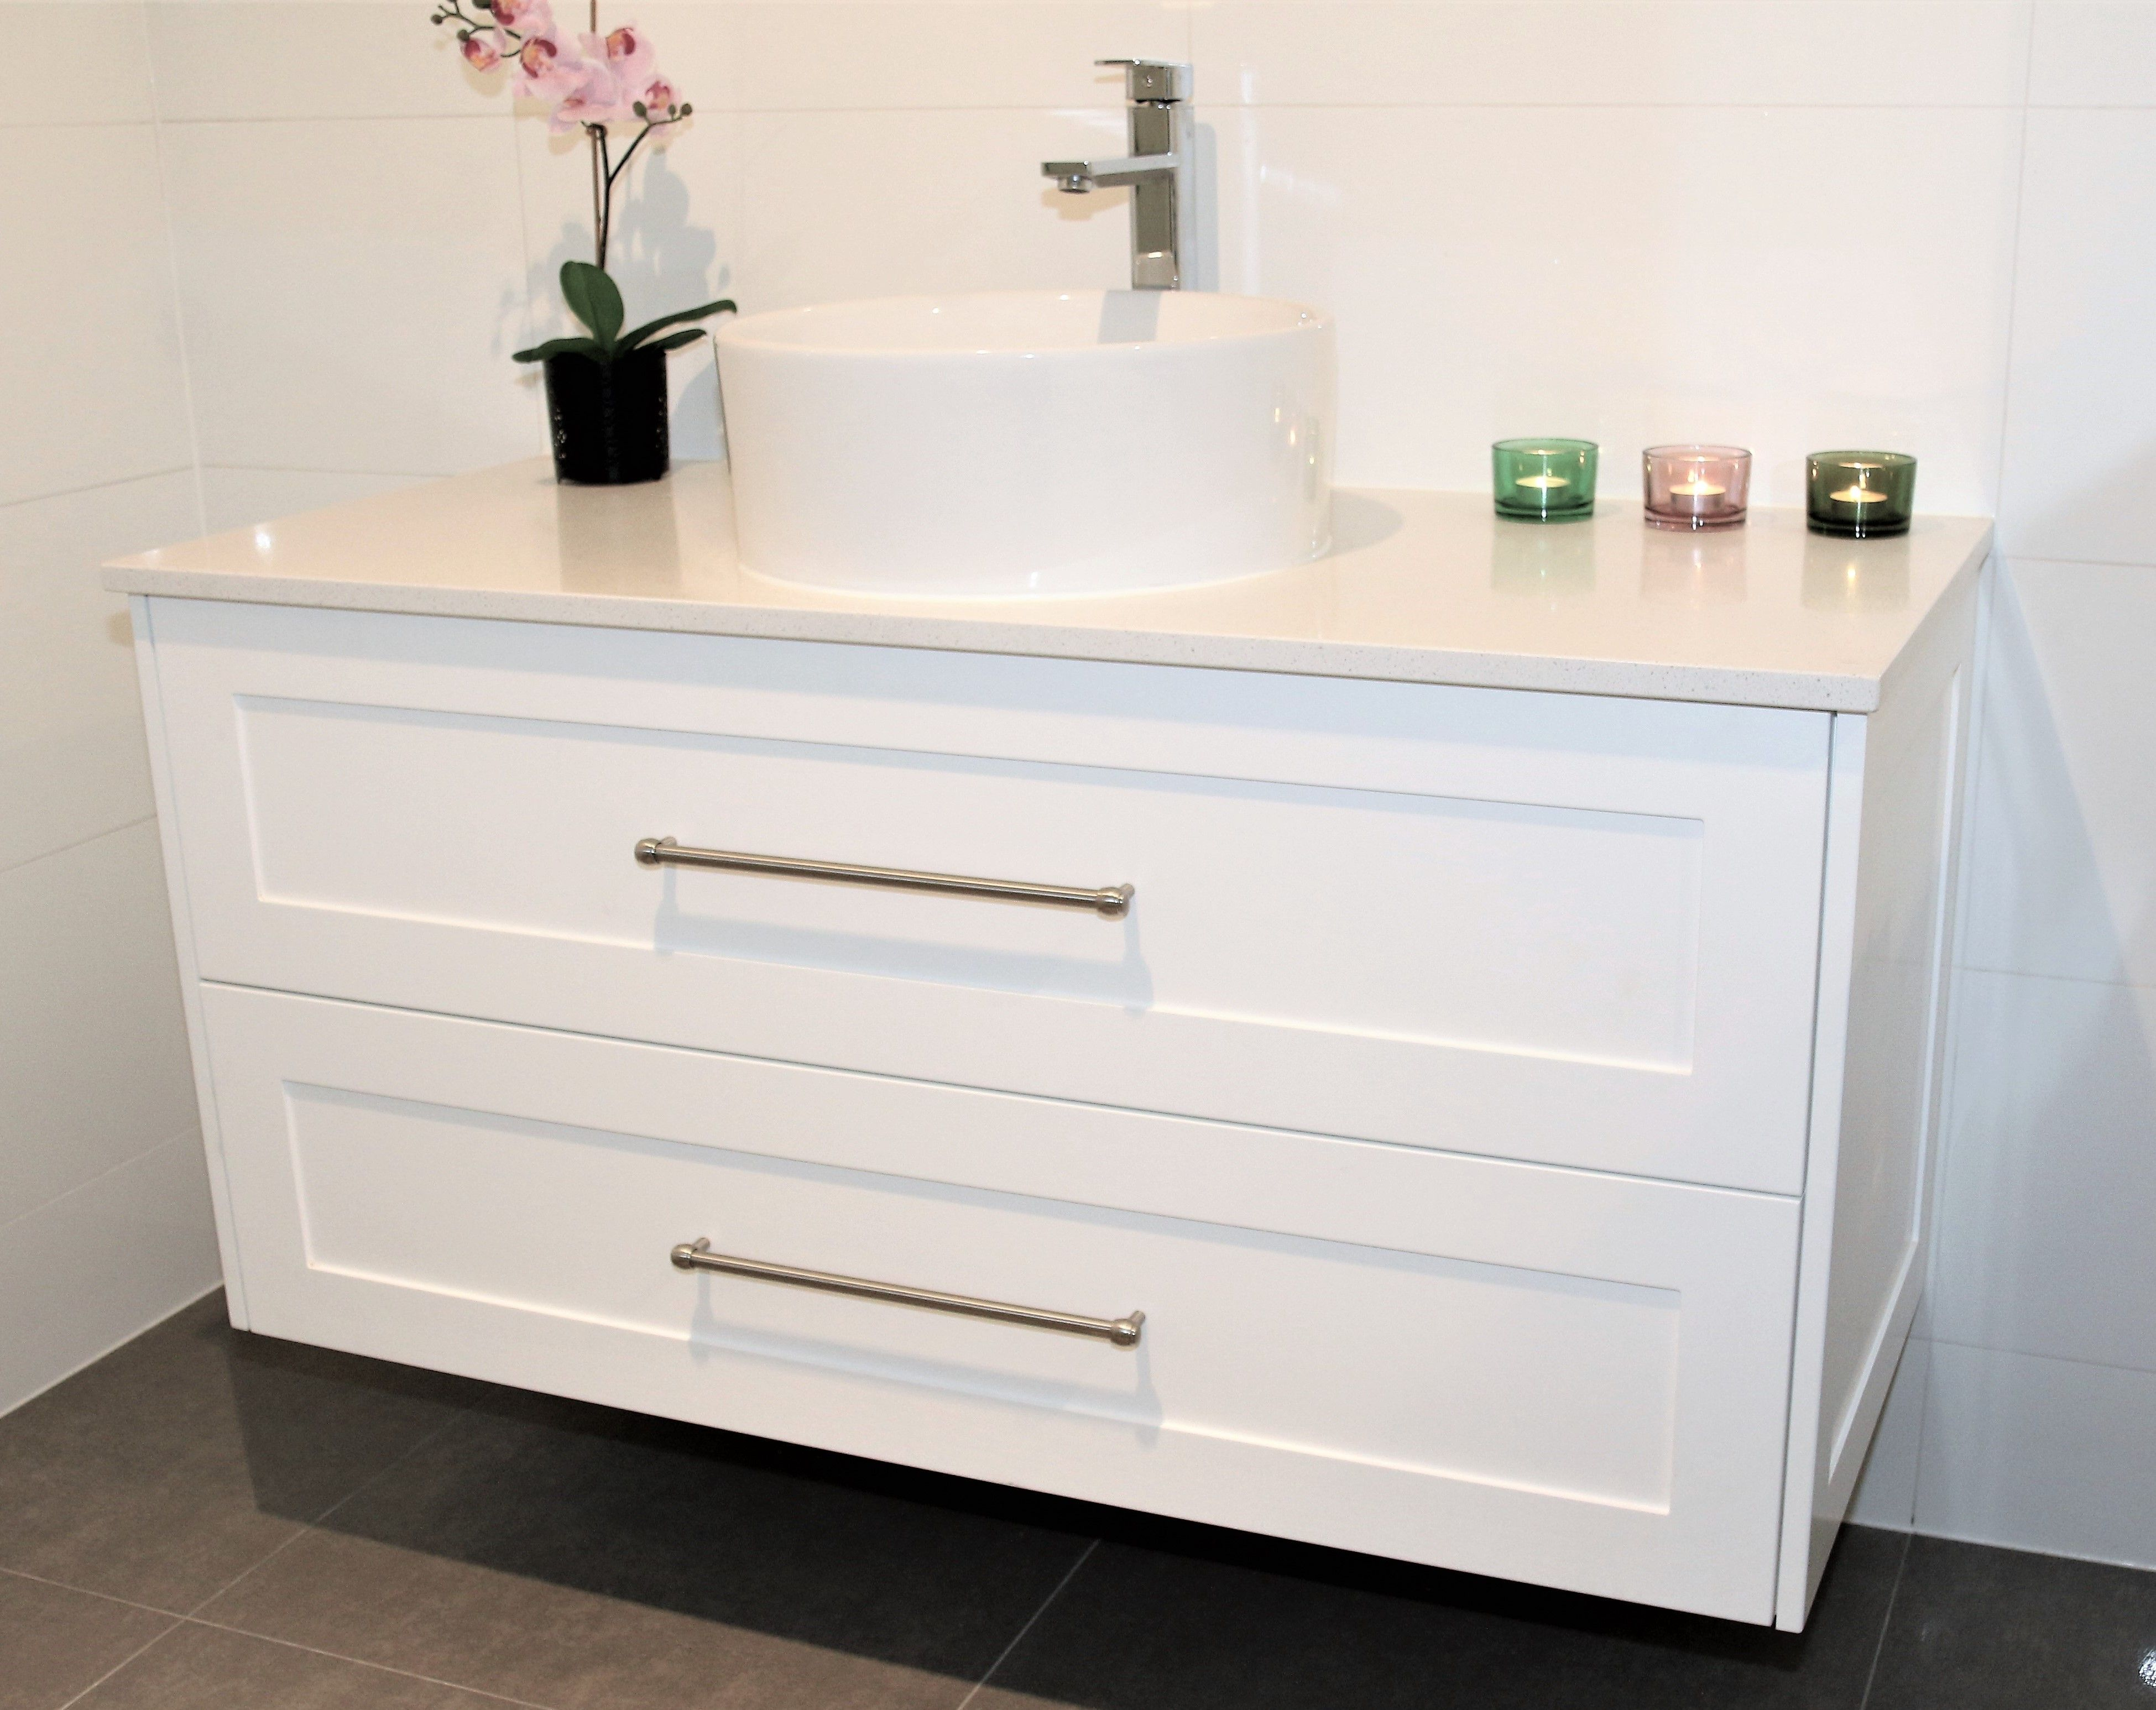 1200 2 Drawer Shaker Style Lucca Wall Hung Vanity With Stone Top